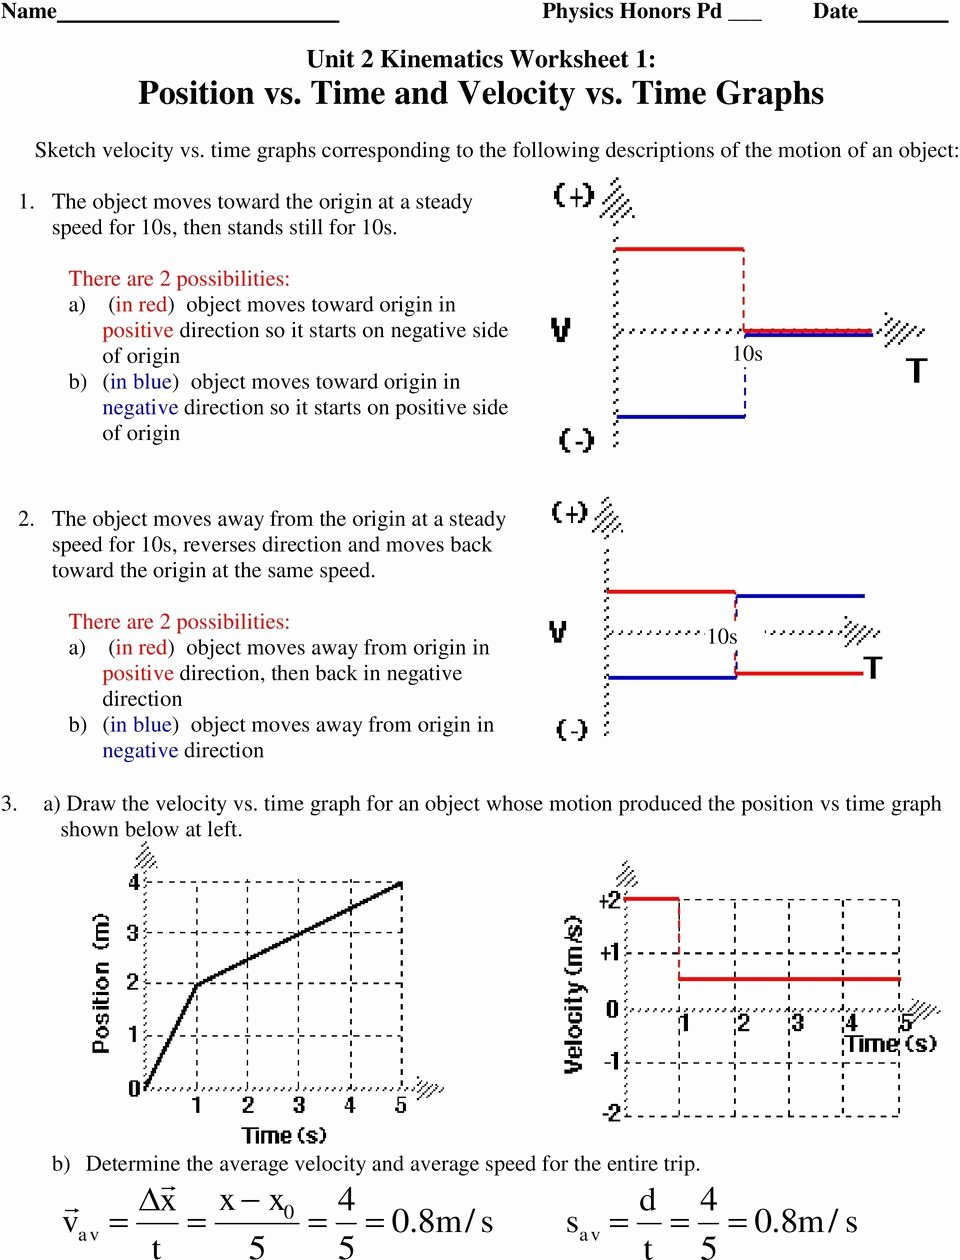 Speed Vs Time Graph Worksheet Fresh Unit 2 Kinematics Worksheet 1 Position Vs Time and